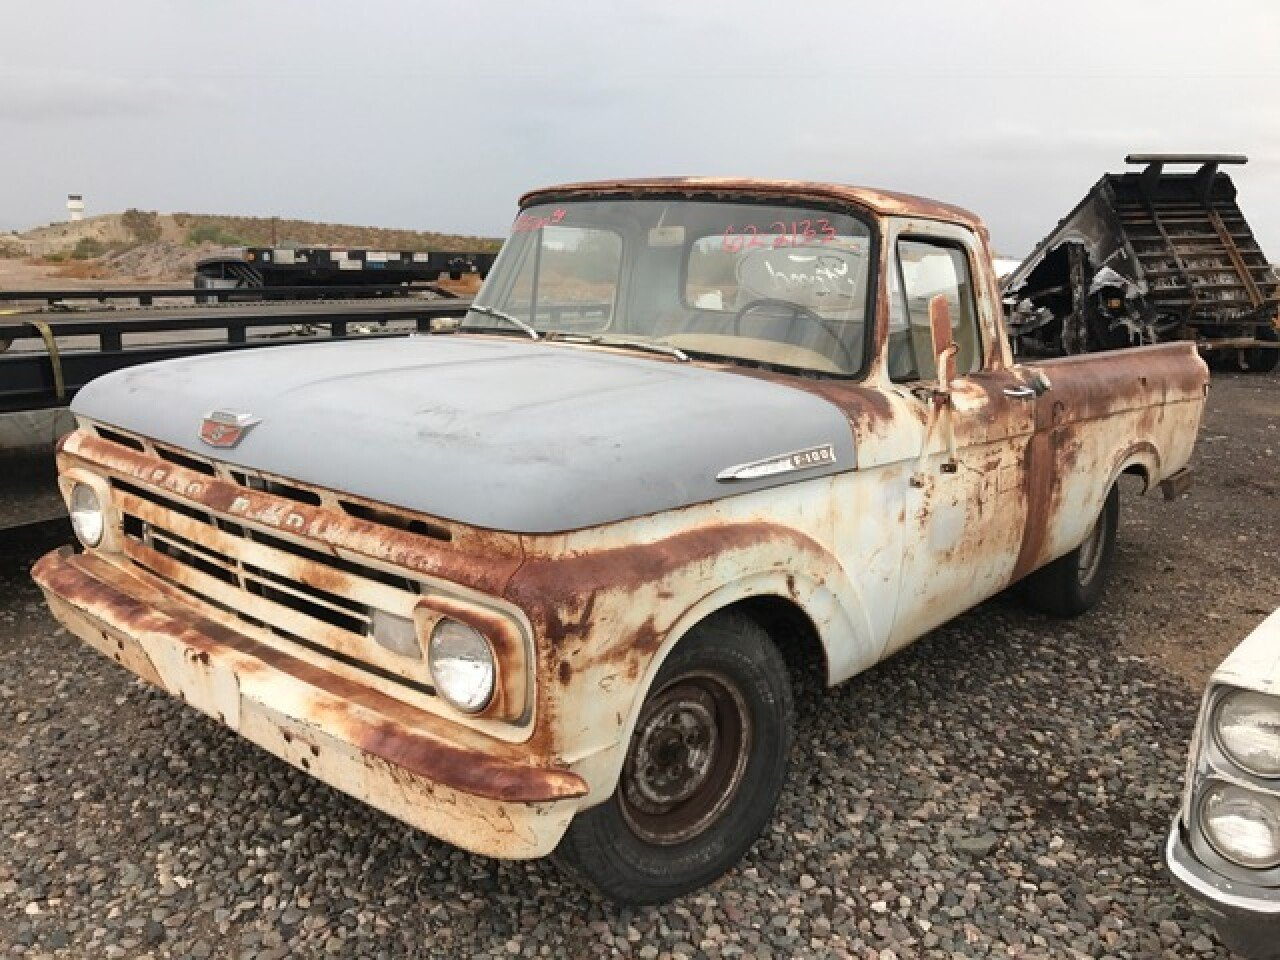 Used Cars Phoenix >> 1962 Ford F100 for sale near Phoenix, Arizona 85085 - Classics on Autotrader